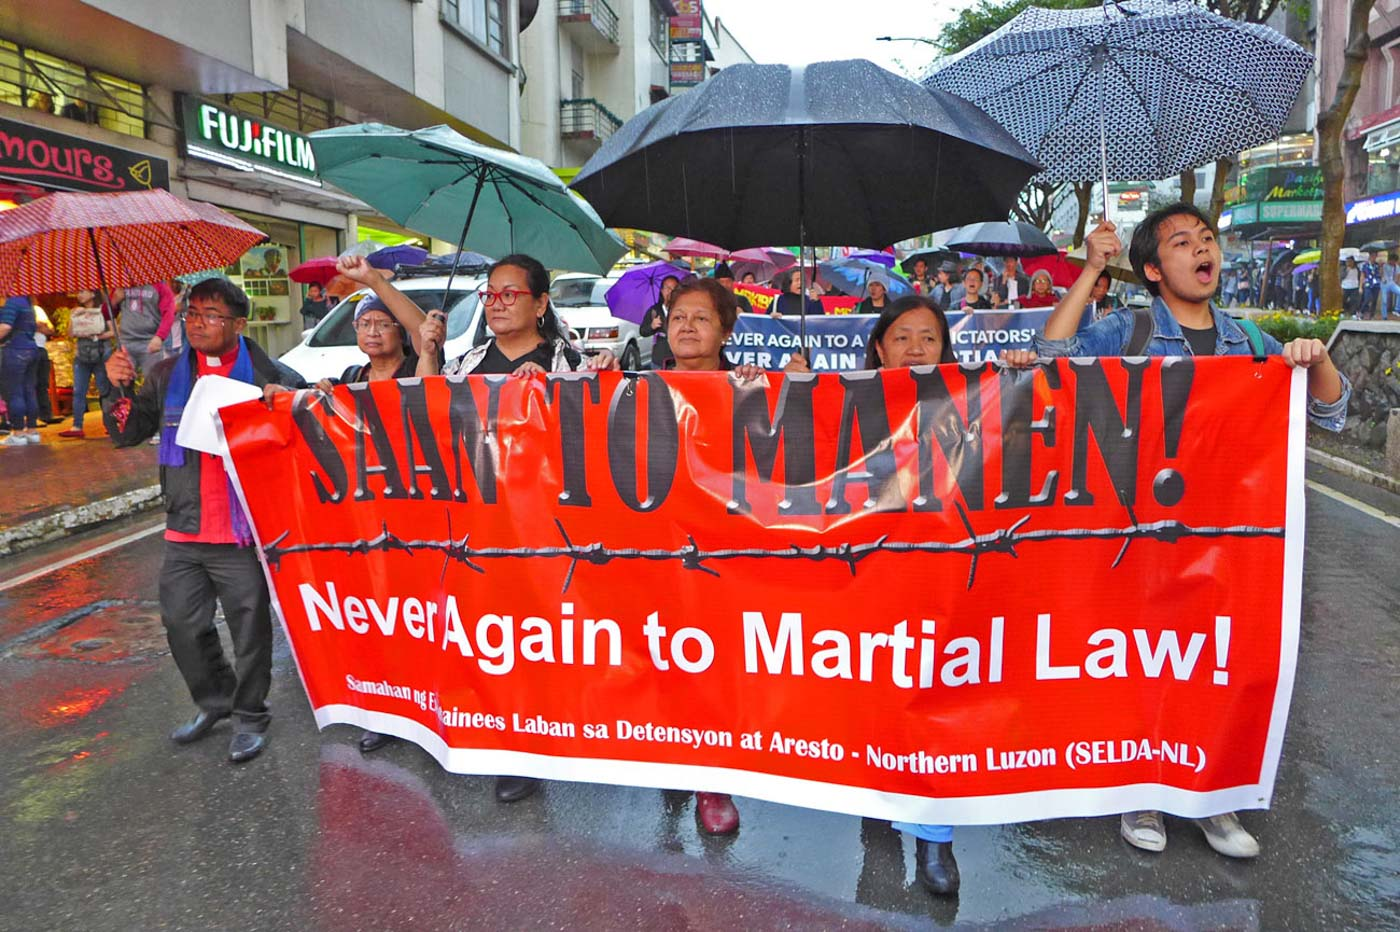 BAGUIO PROTEST. Protesters, mostly students, called for the ouster of President Rodrigo Duterte as Baguio joined the observance of the declaration of Martial Law on Friday, September 21. Photo by Mau Victa/Rappler